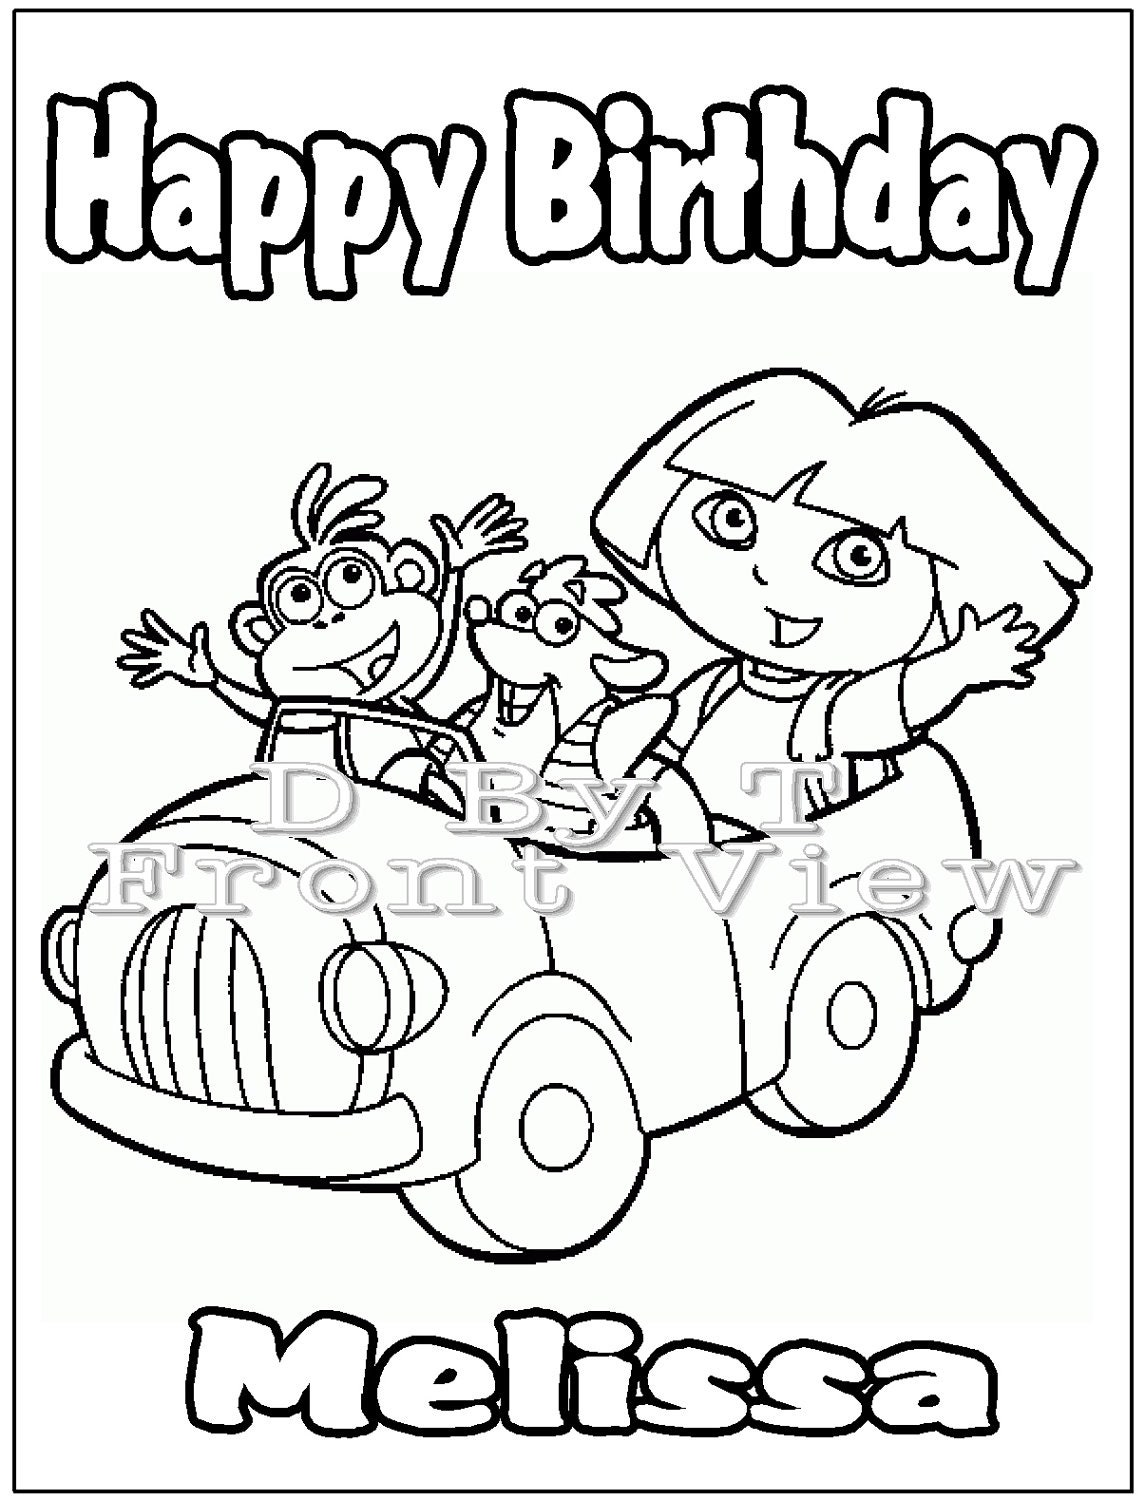 Items Similar To Personalized Dora Inspired Coloring Book Card Favor Digital PDF Printable On Etsy